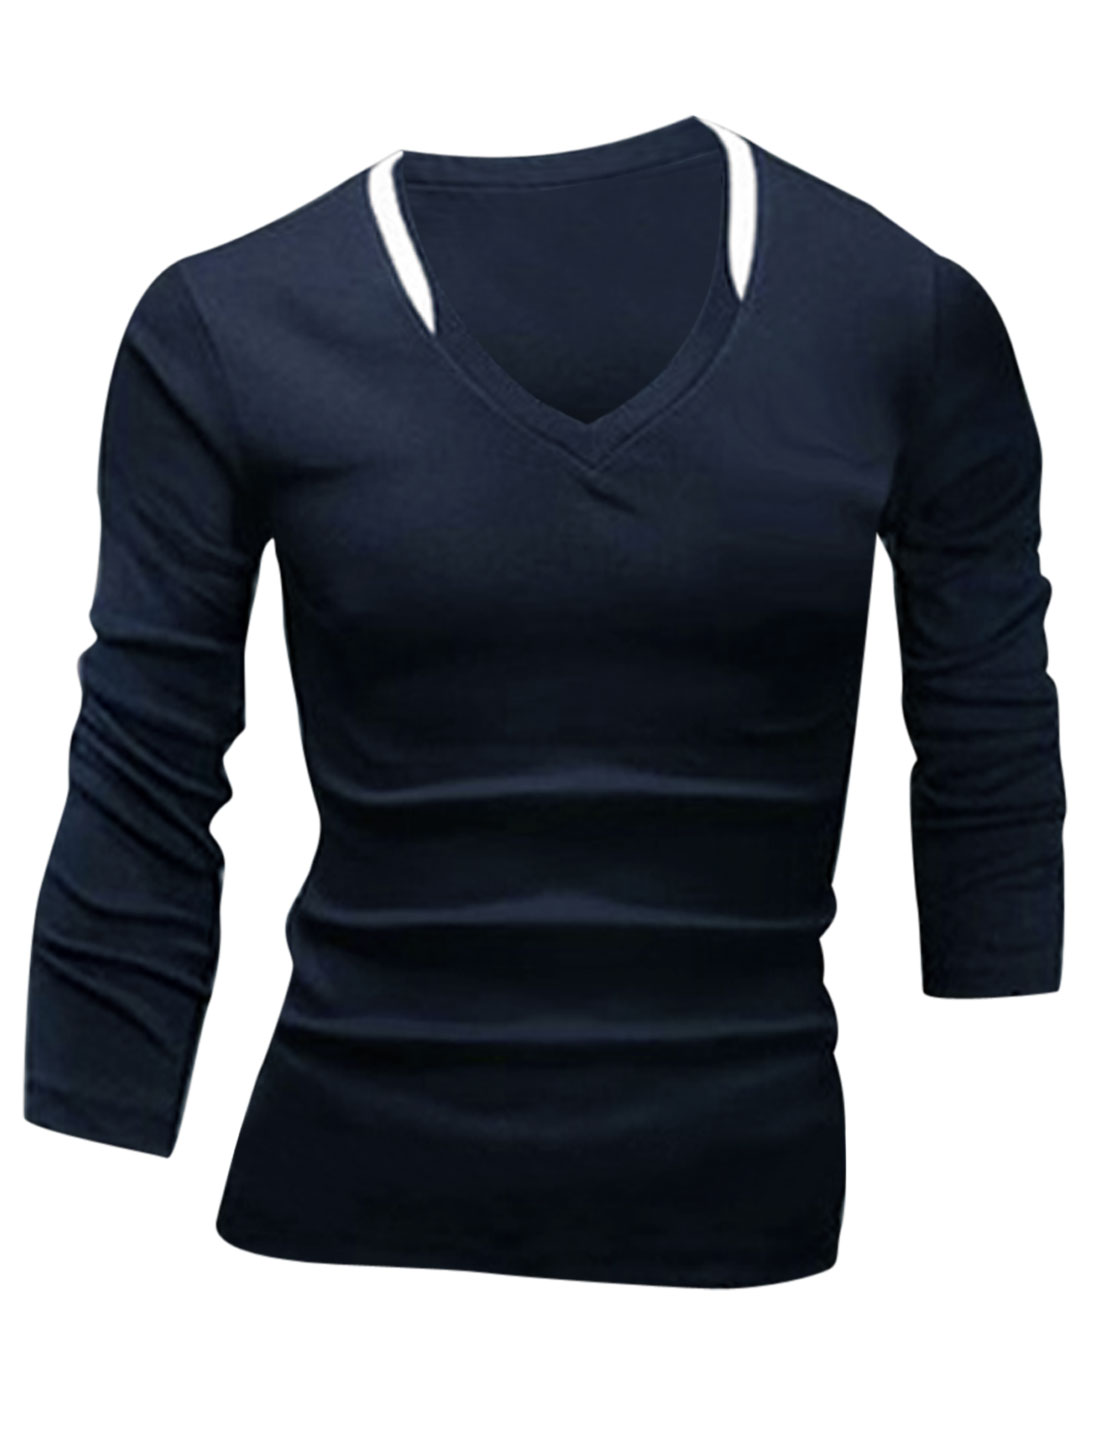 Men V Neck Long Sleeve Slim Fit T-Shirt Navy Blue M